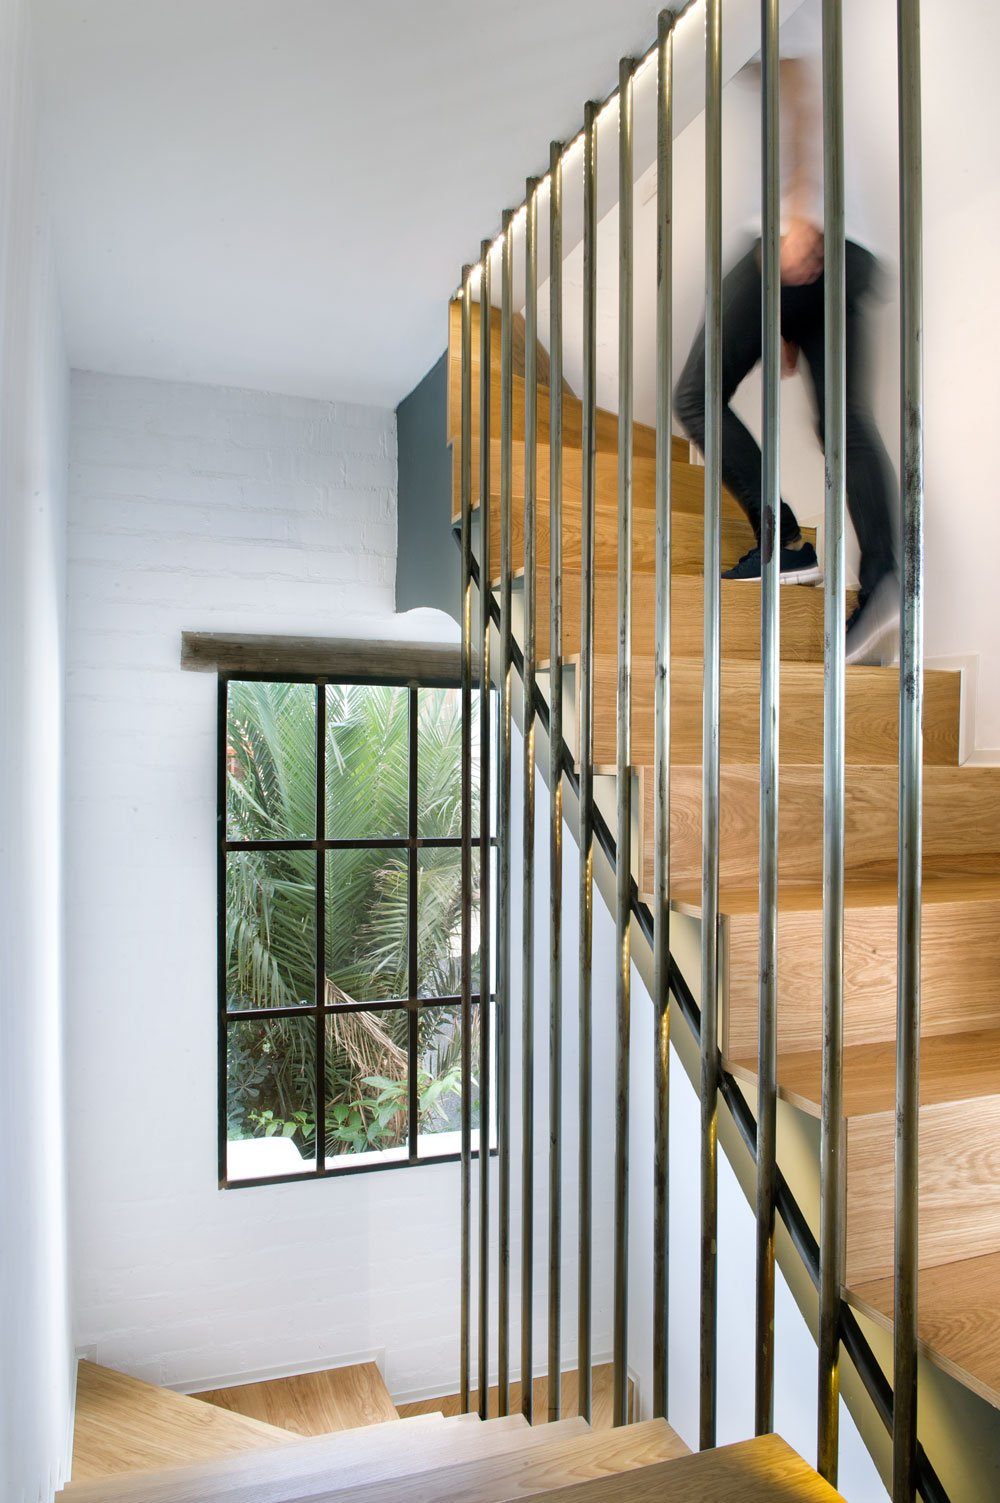 Spiral wooden staircase with a window on the side wall lets you glance out for nature viewing while walking upstairs, a high and sturdy railings are provided to give you hold.